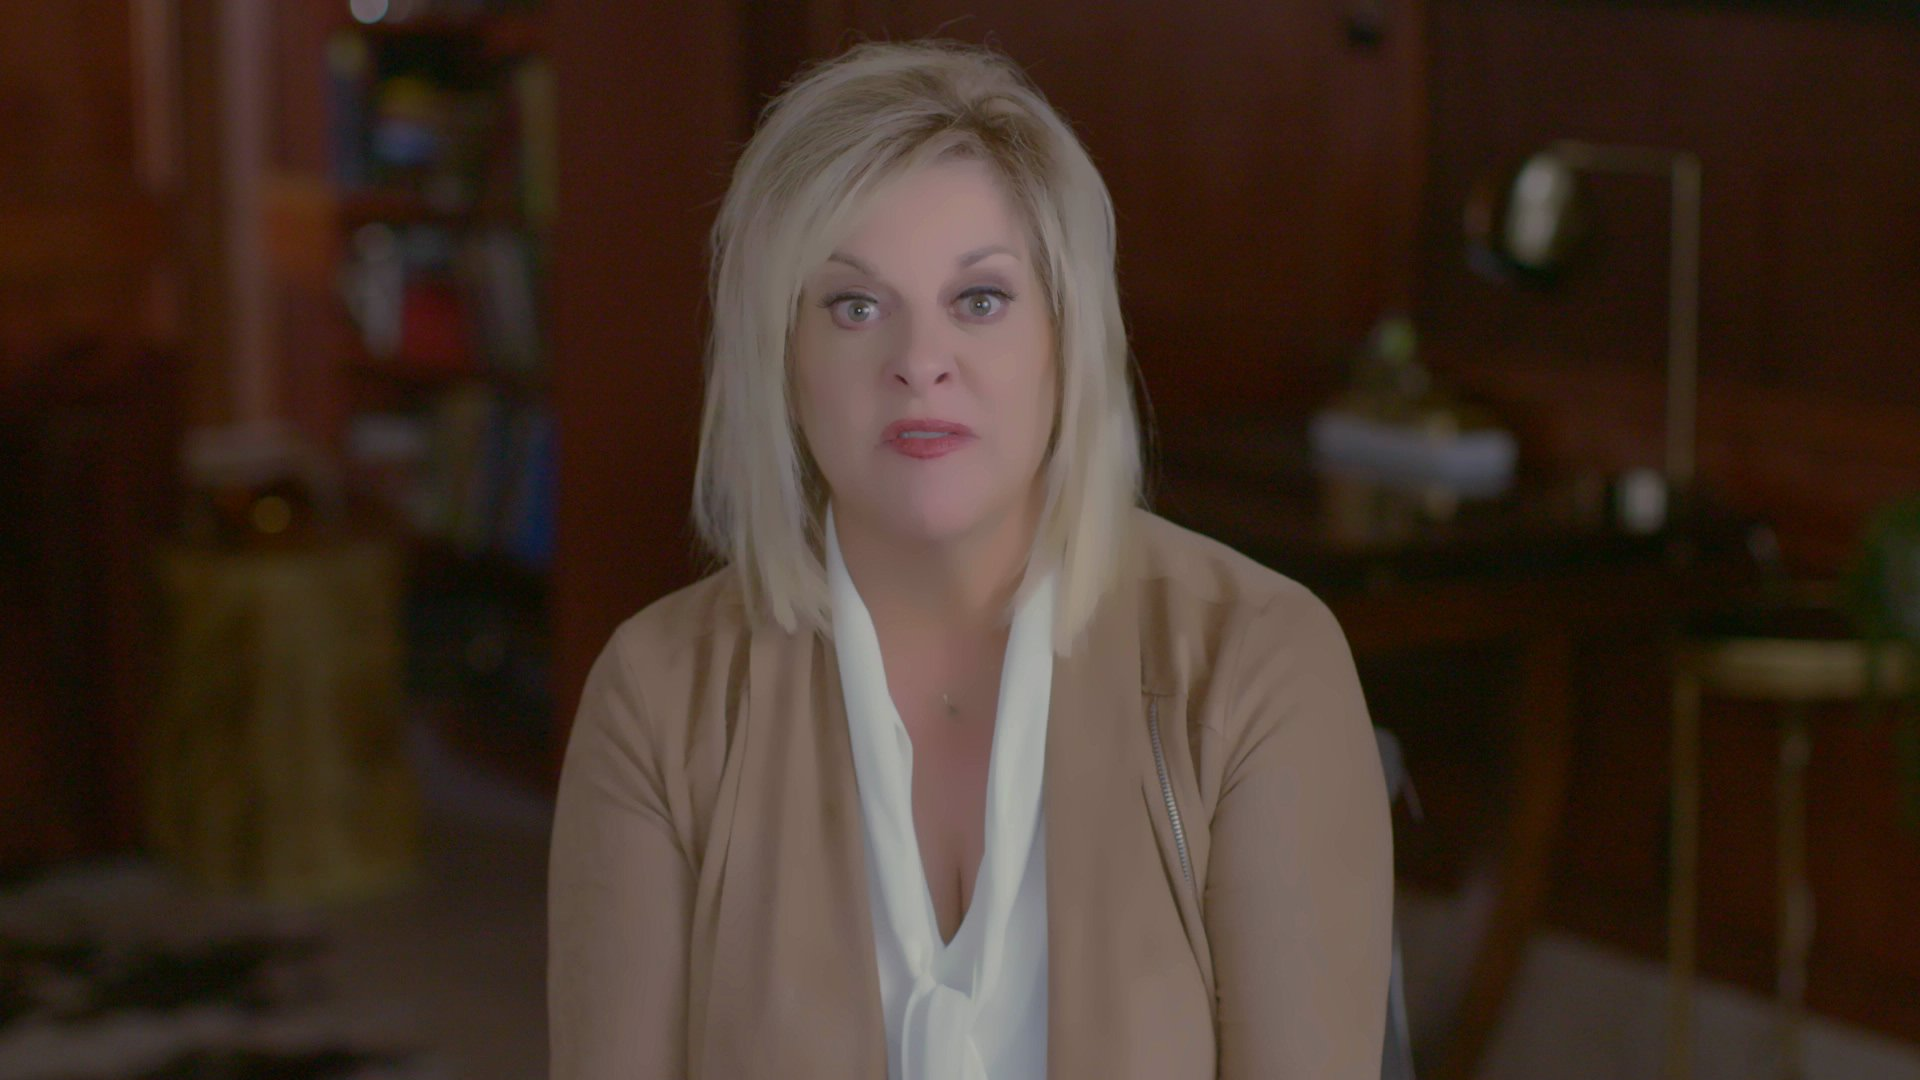 Injustice With Nancy Grace Bonus: Annie Kasprzak Dreamt Of A Family Of Her Own